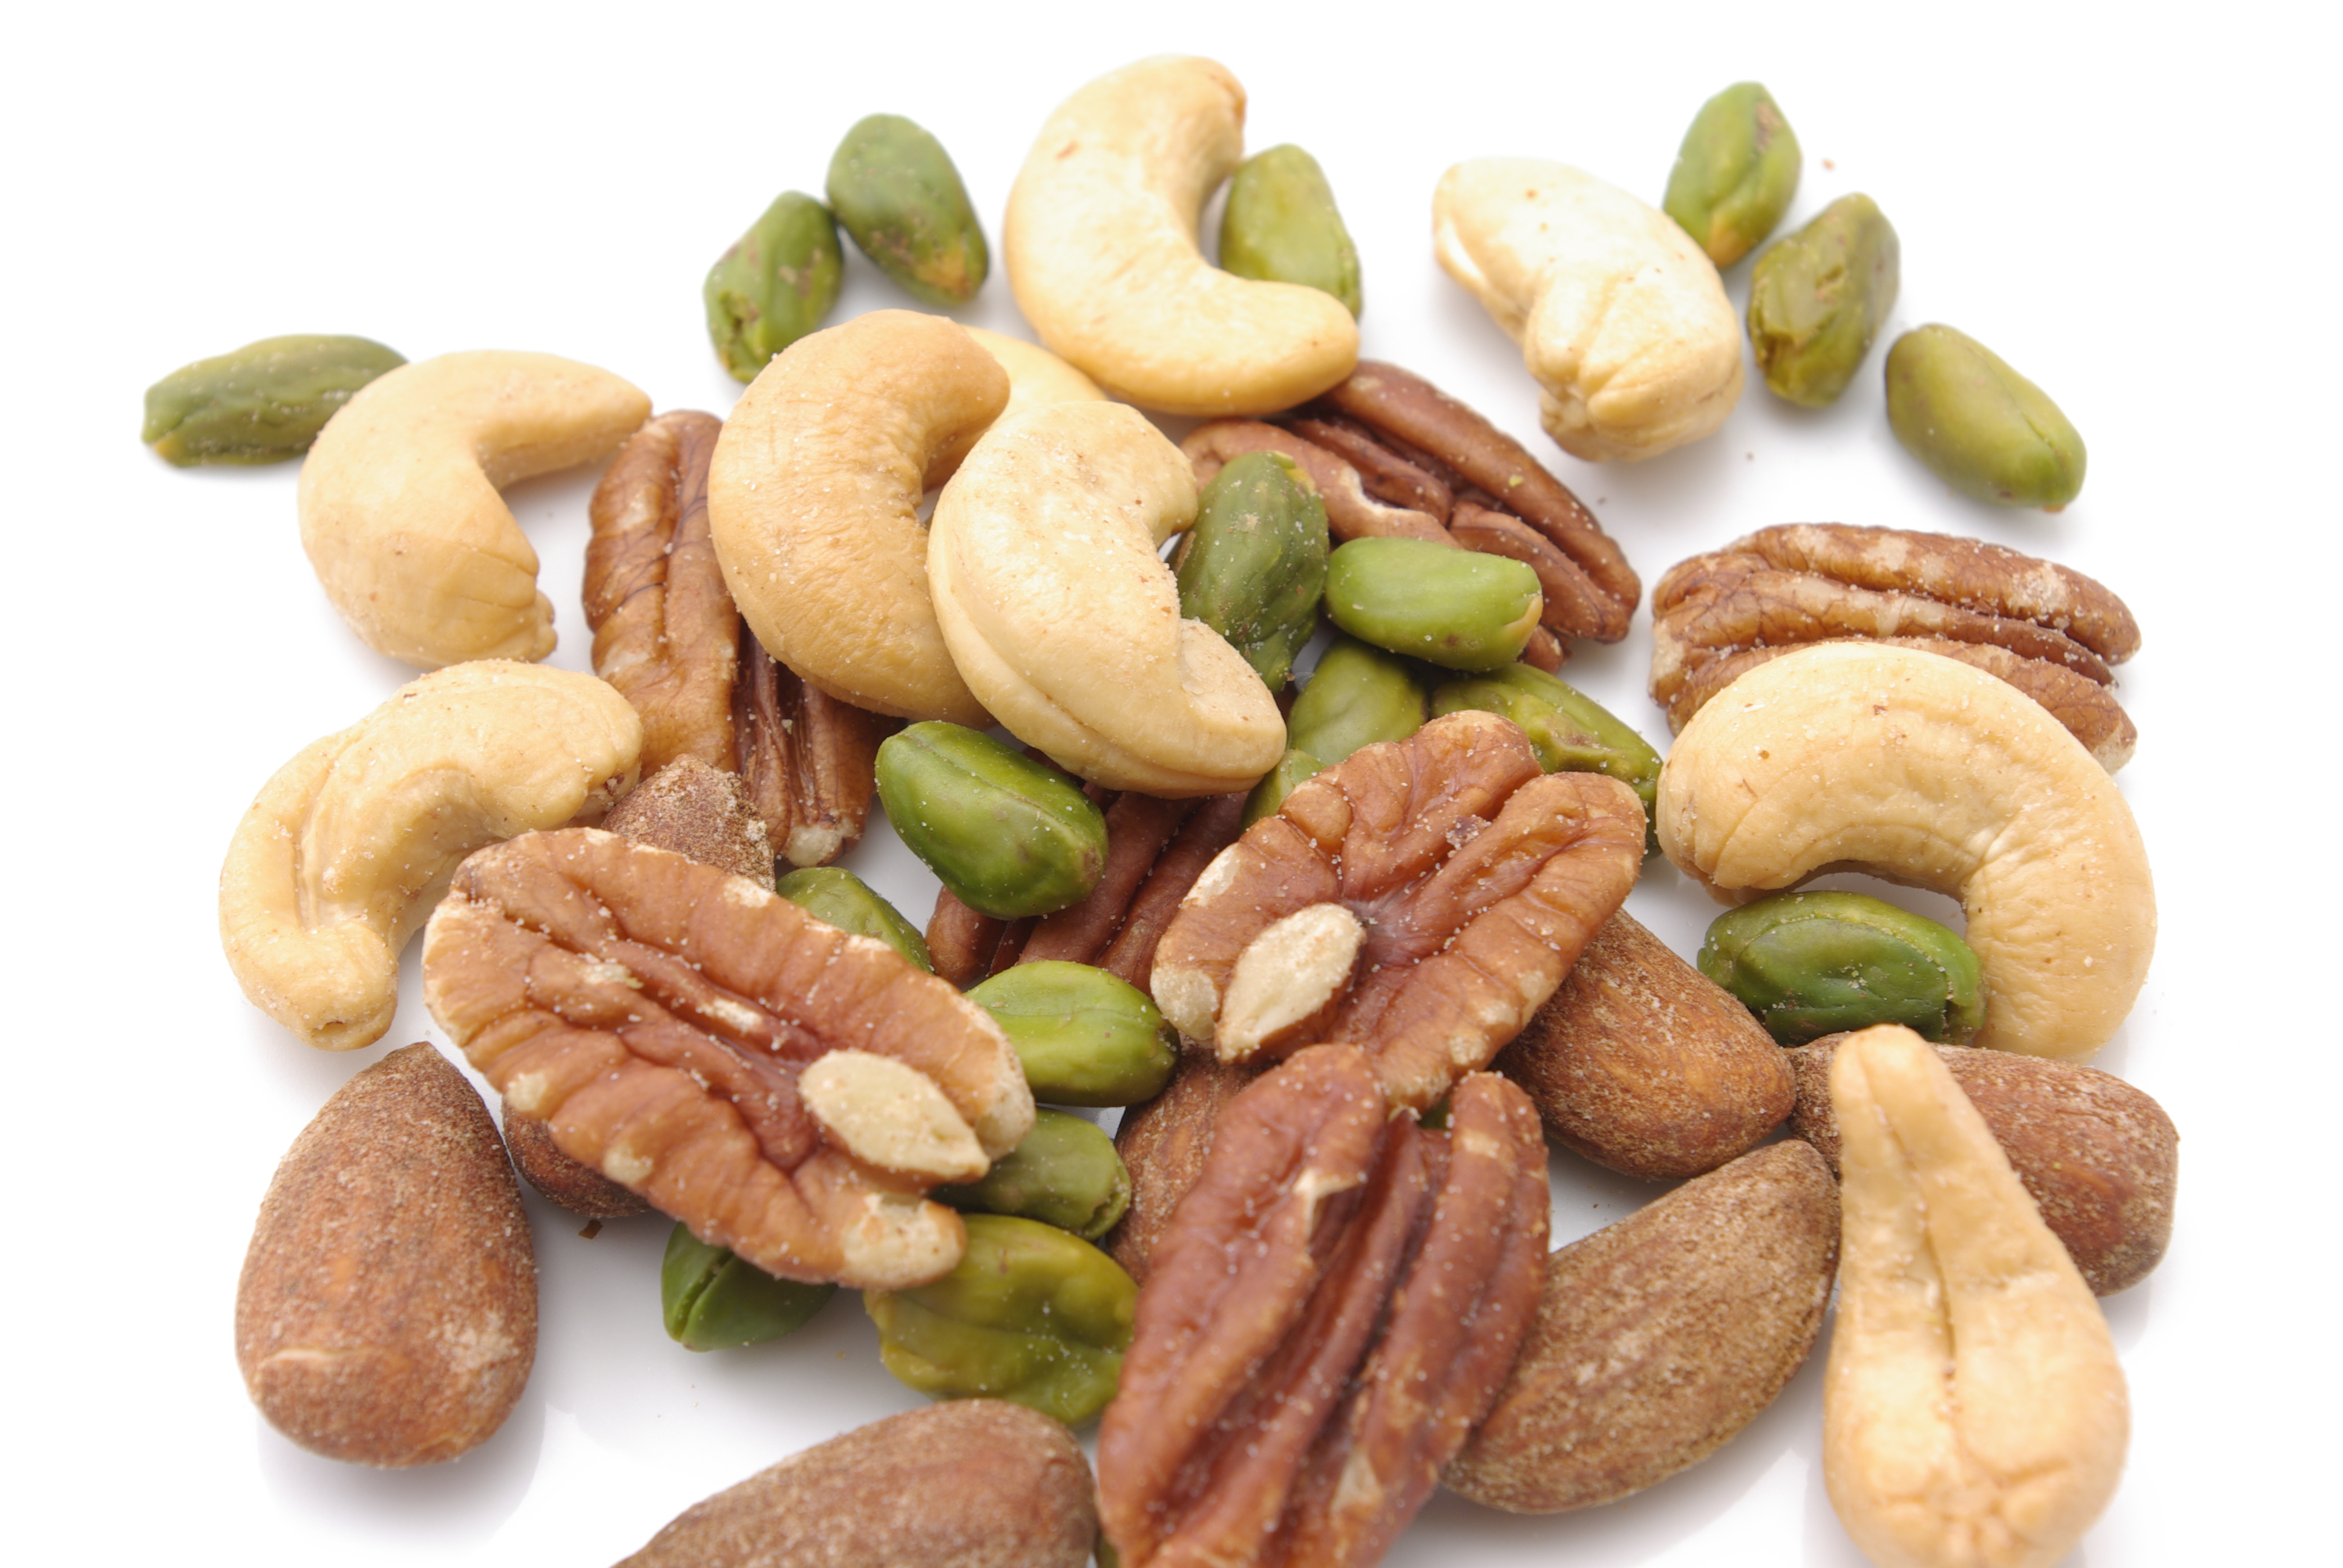 Mangez Des Fruits Secs     Eat Nuts And Dried Fruits